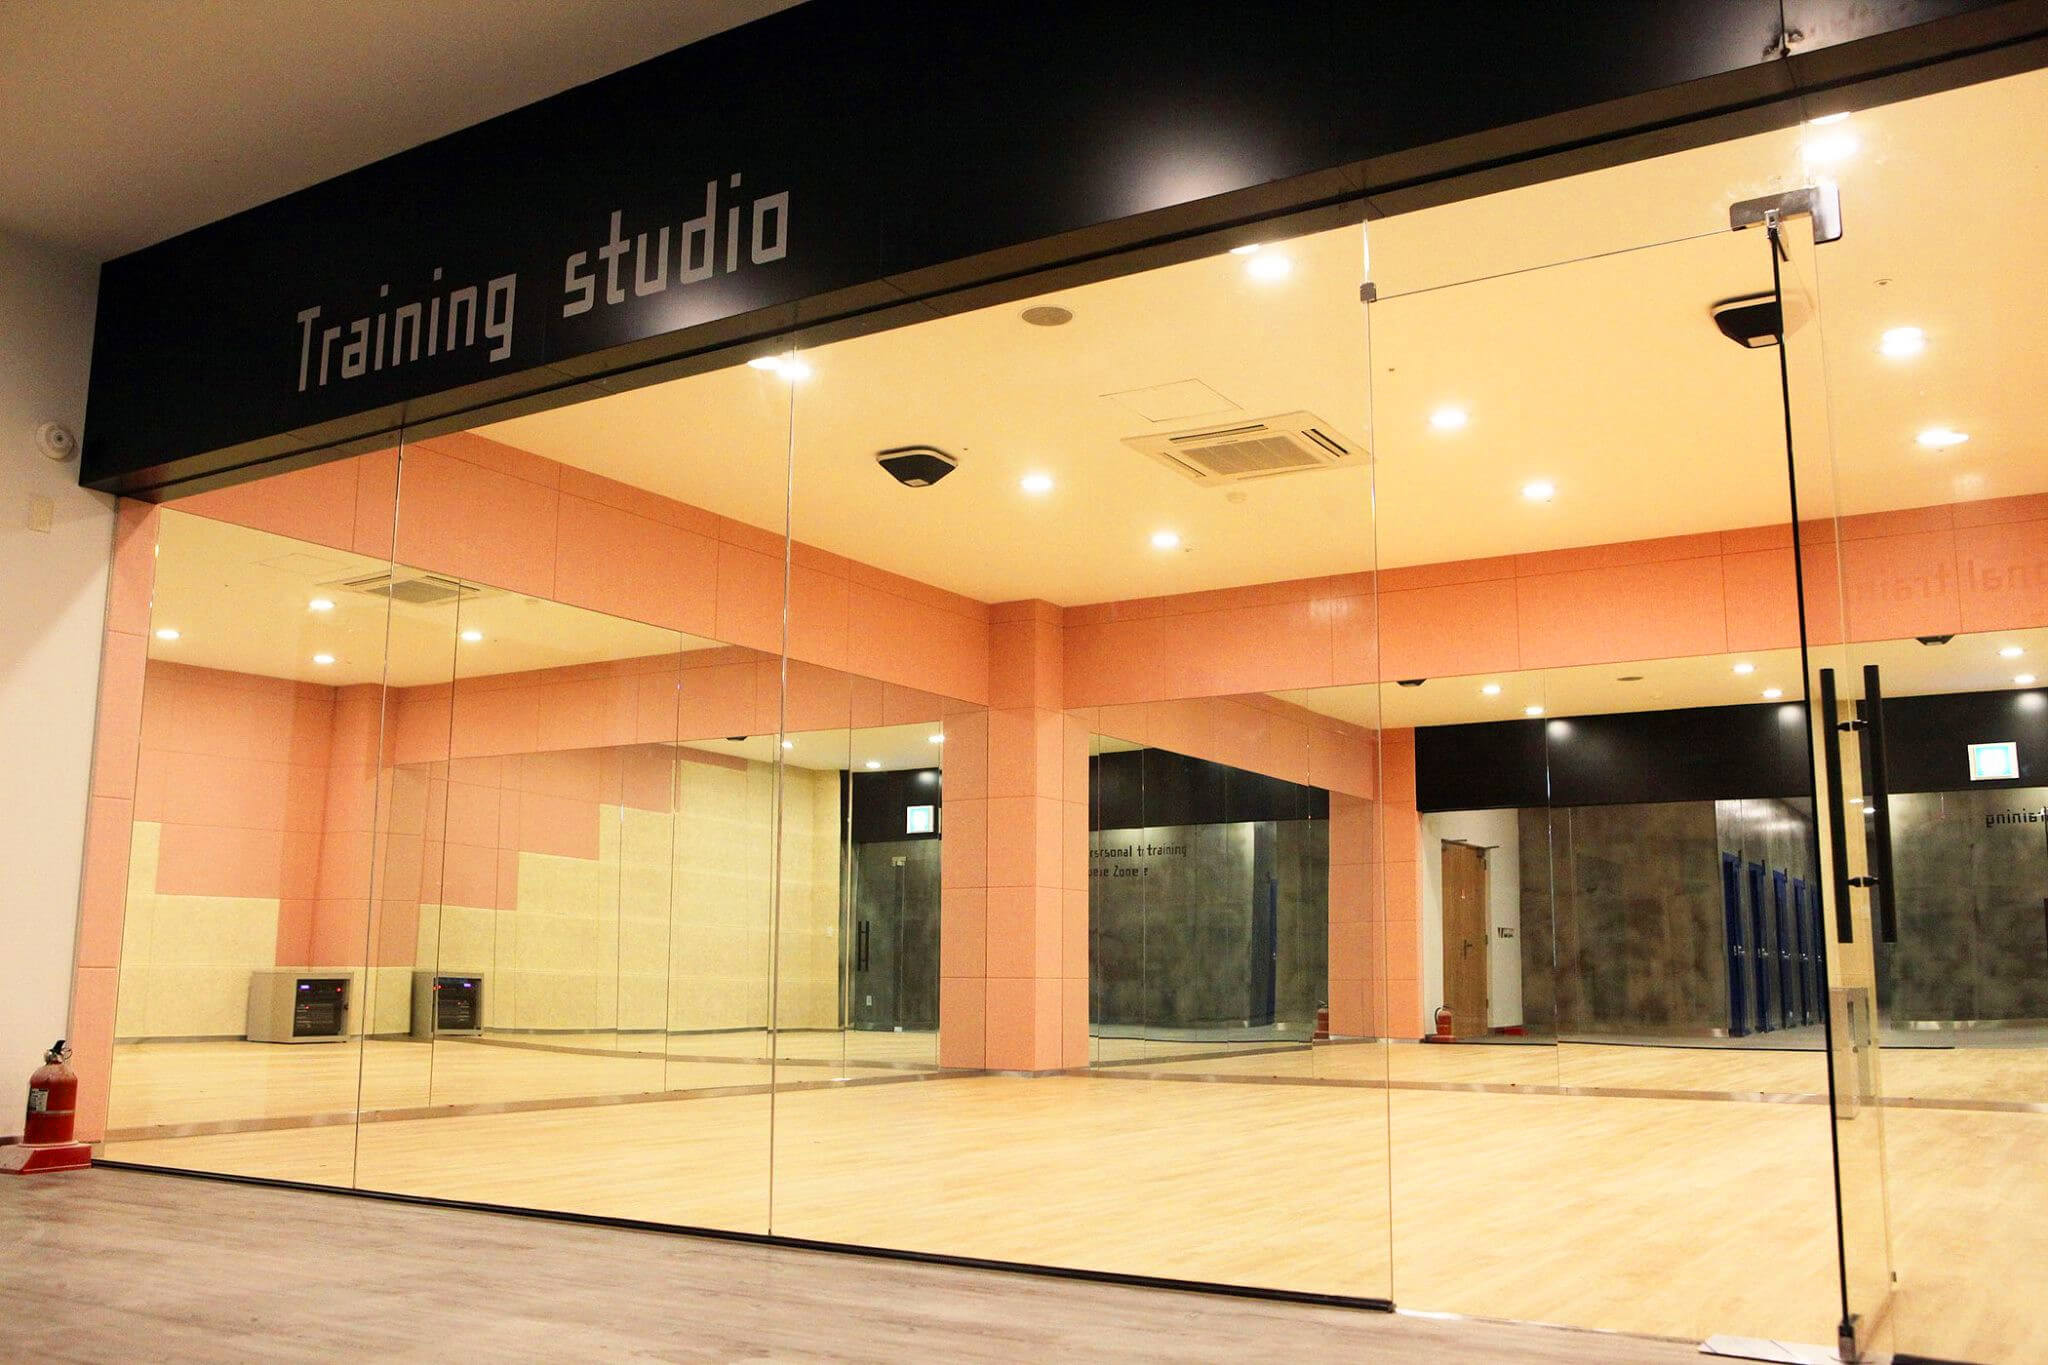 Training Studio